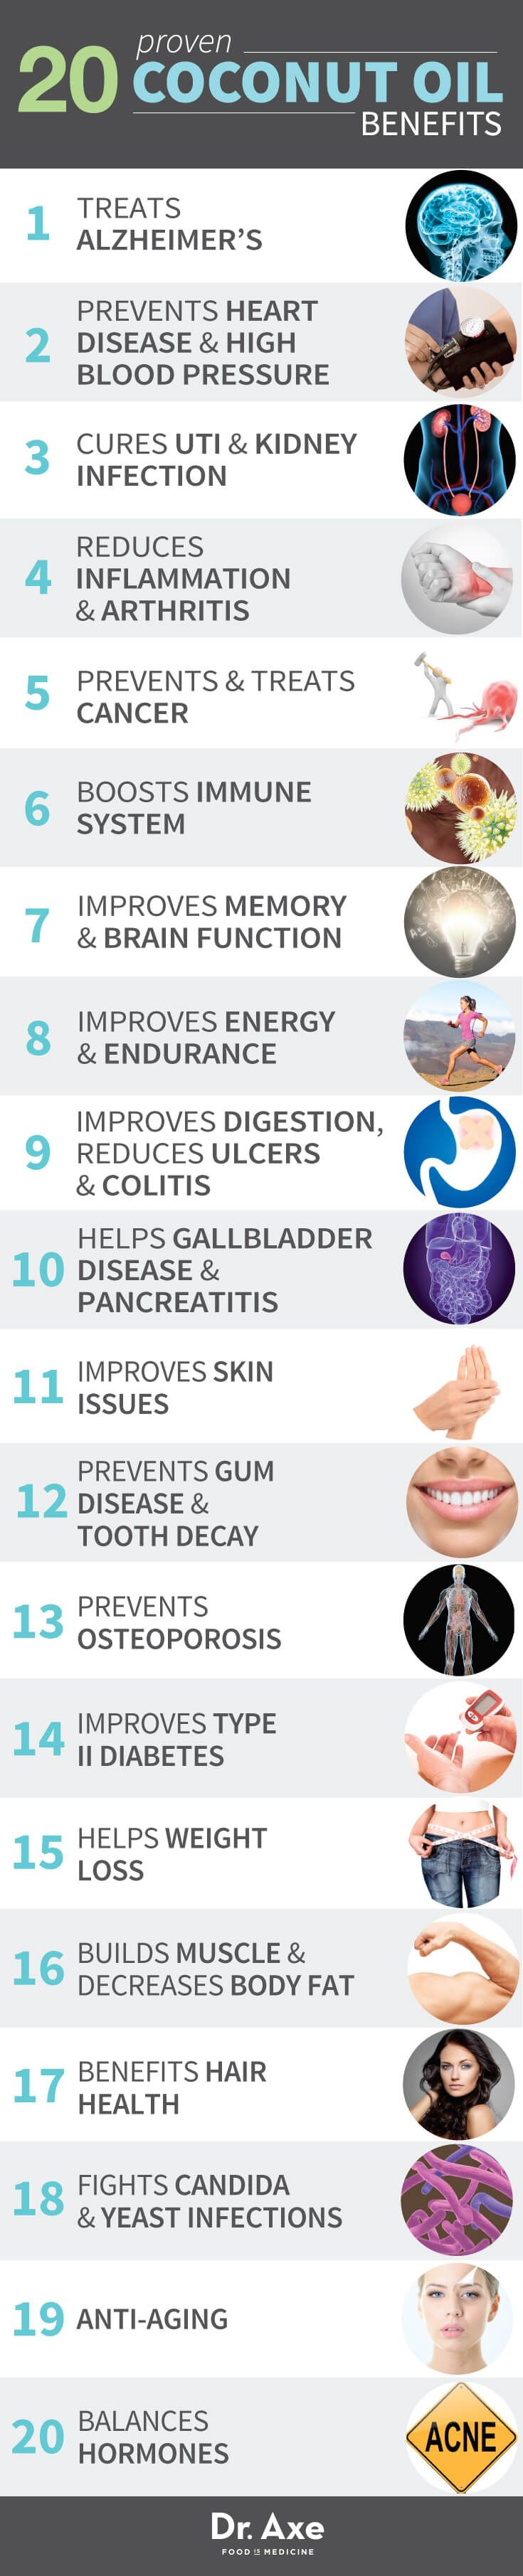 #coconutoil #naturalliving Proven Coconut Oil Health Benefits List infographic